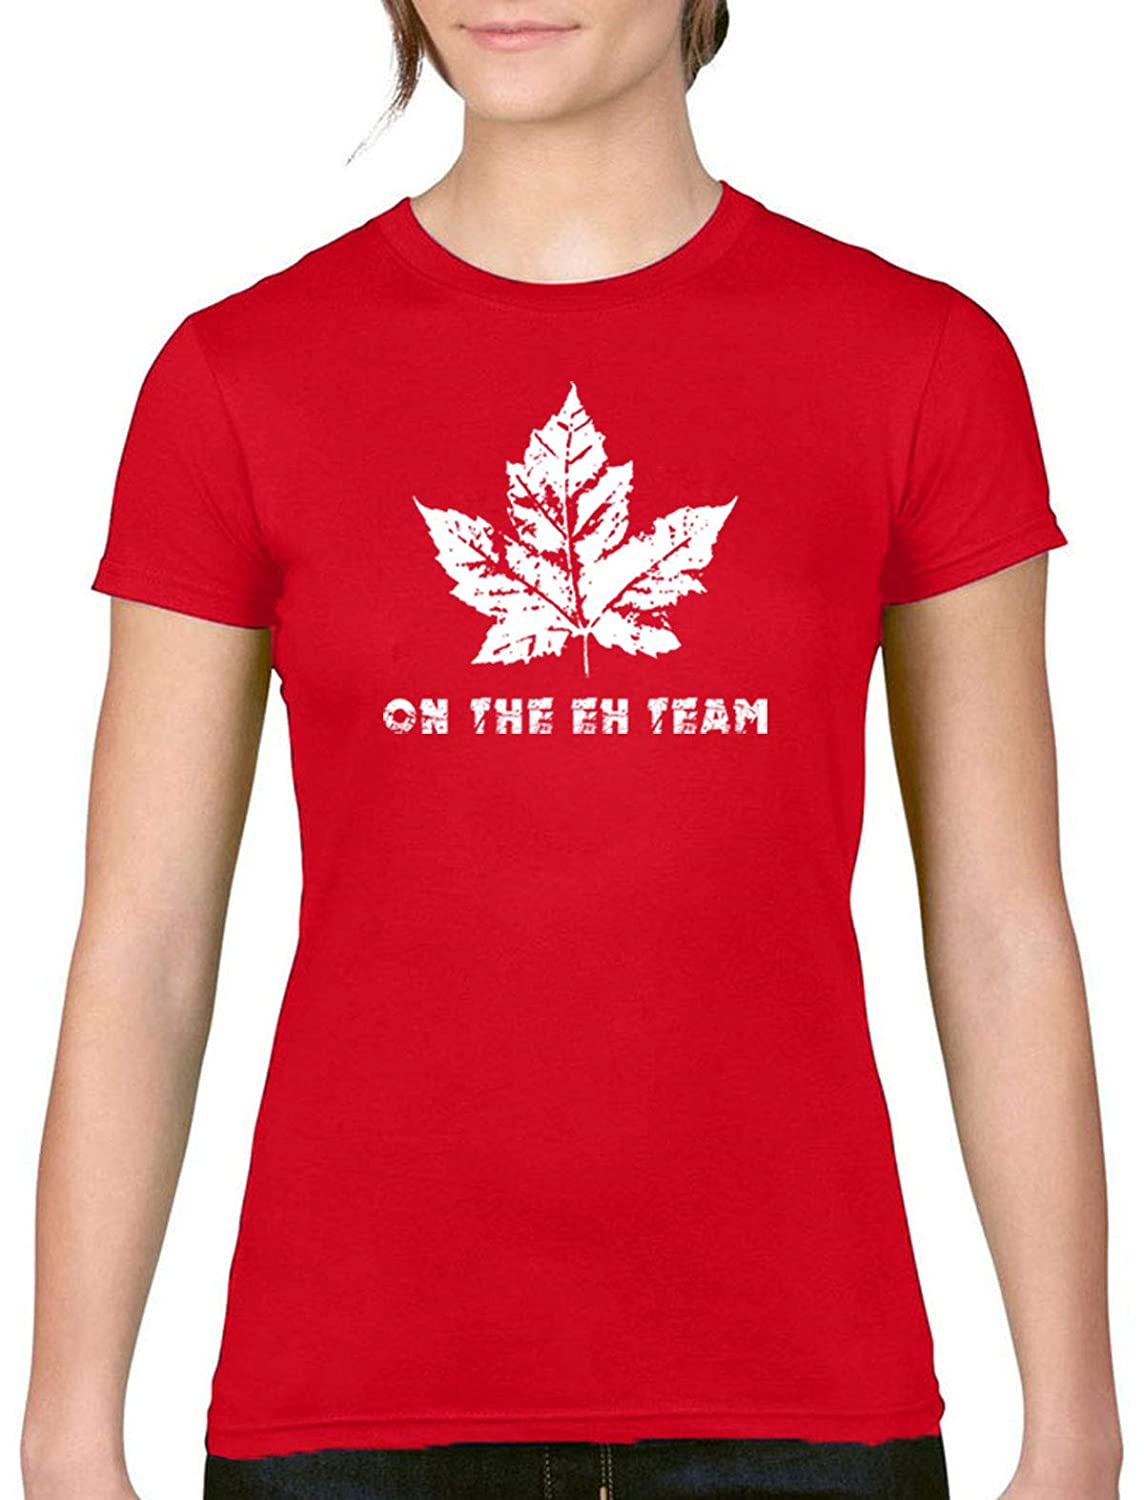 8428c11afcbd Witty Fashions On The Eh Team Canada Day Canadian Red Women's Round Neck  Shirt: Amazon.ca: Clothing & Accessories